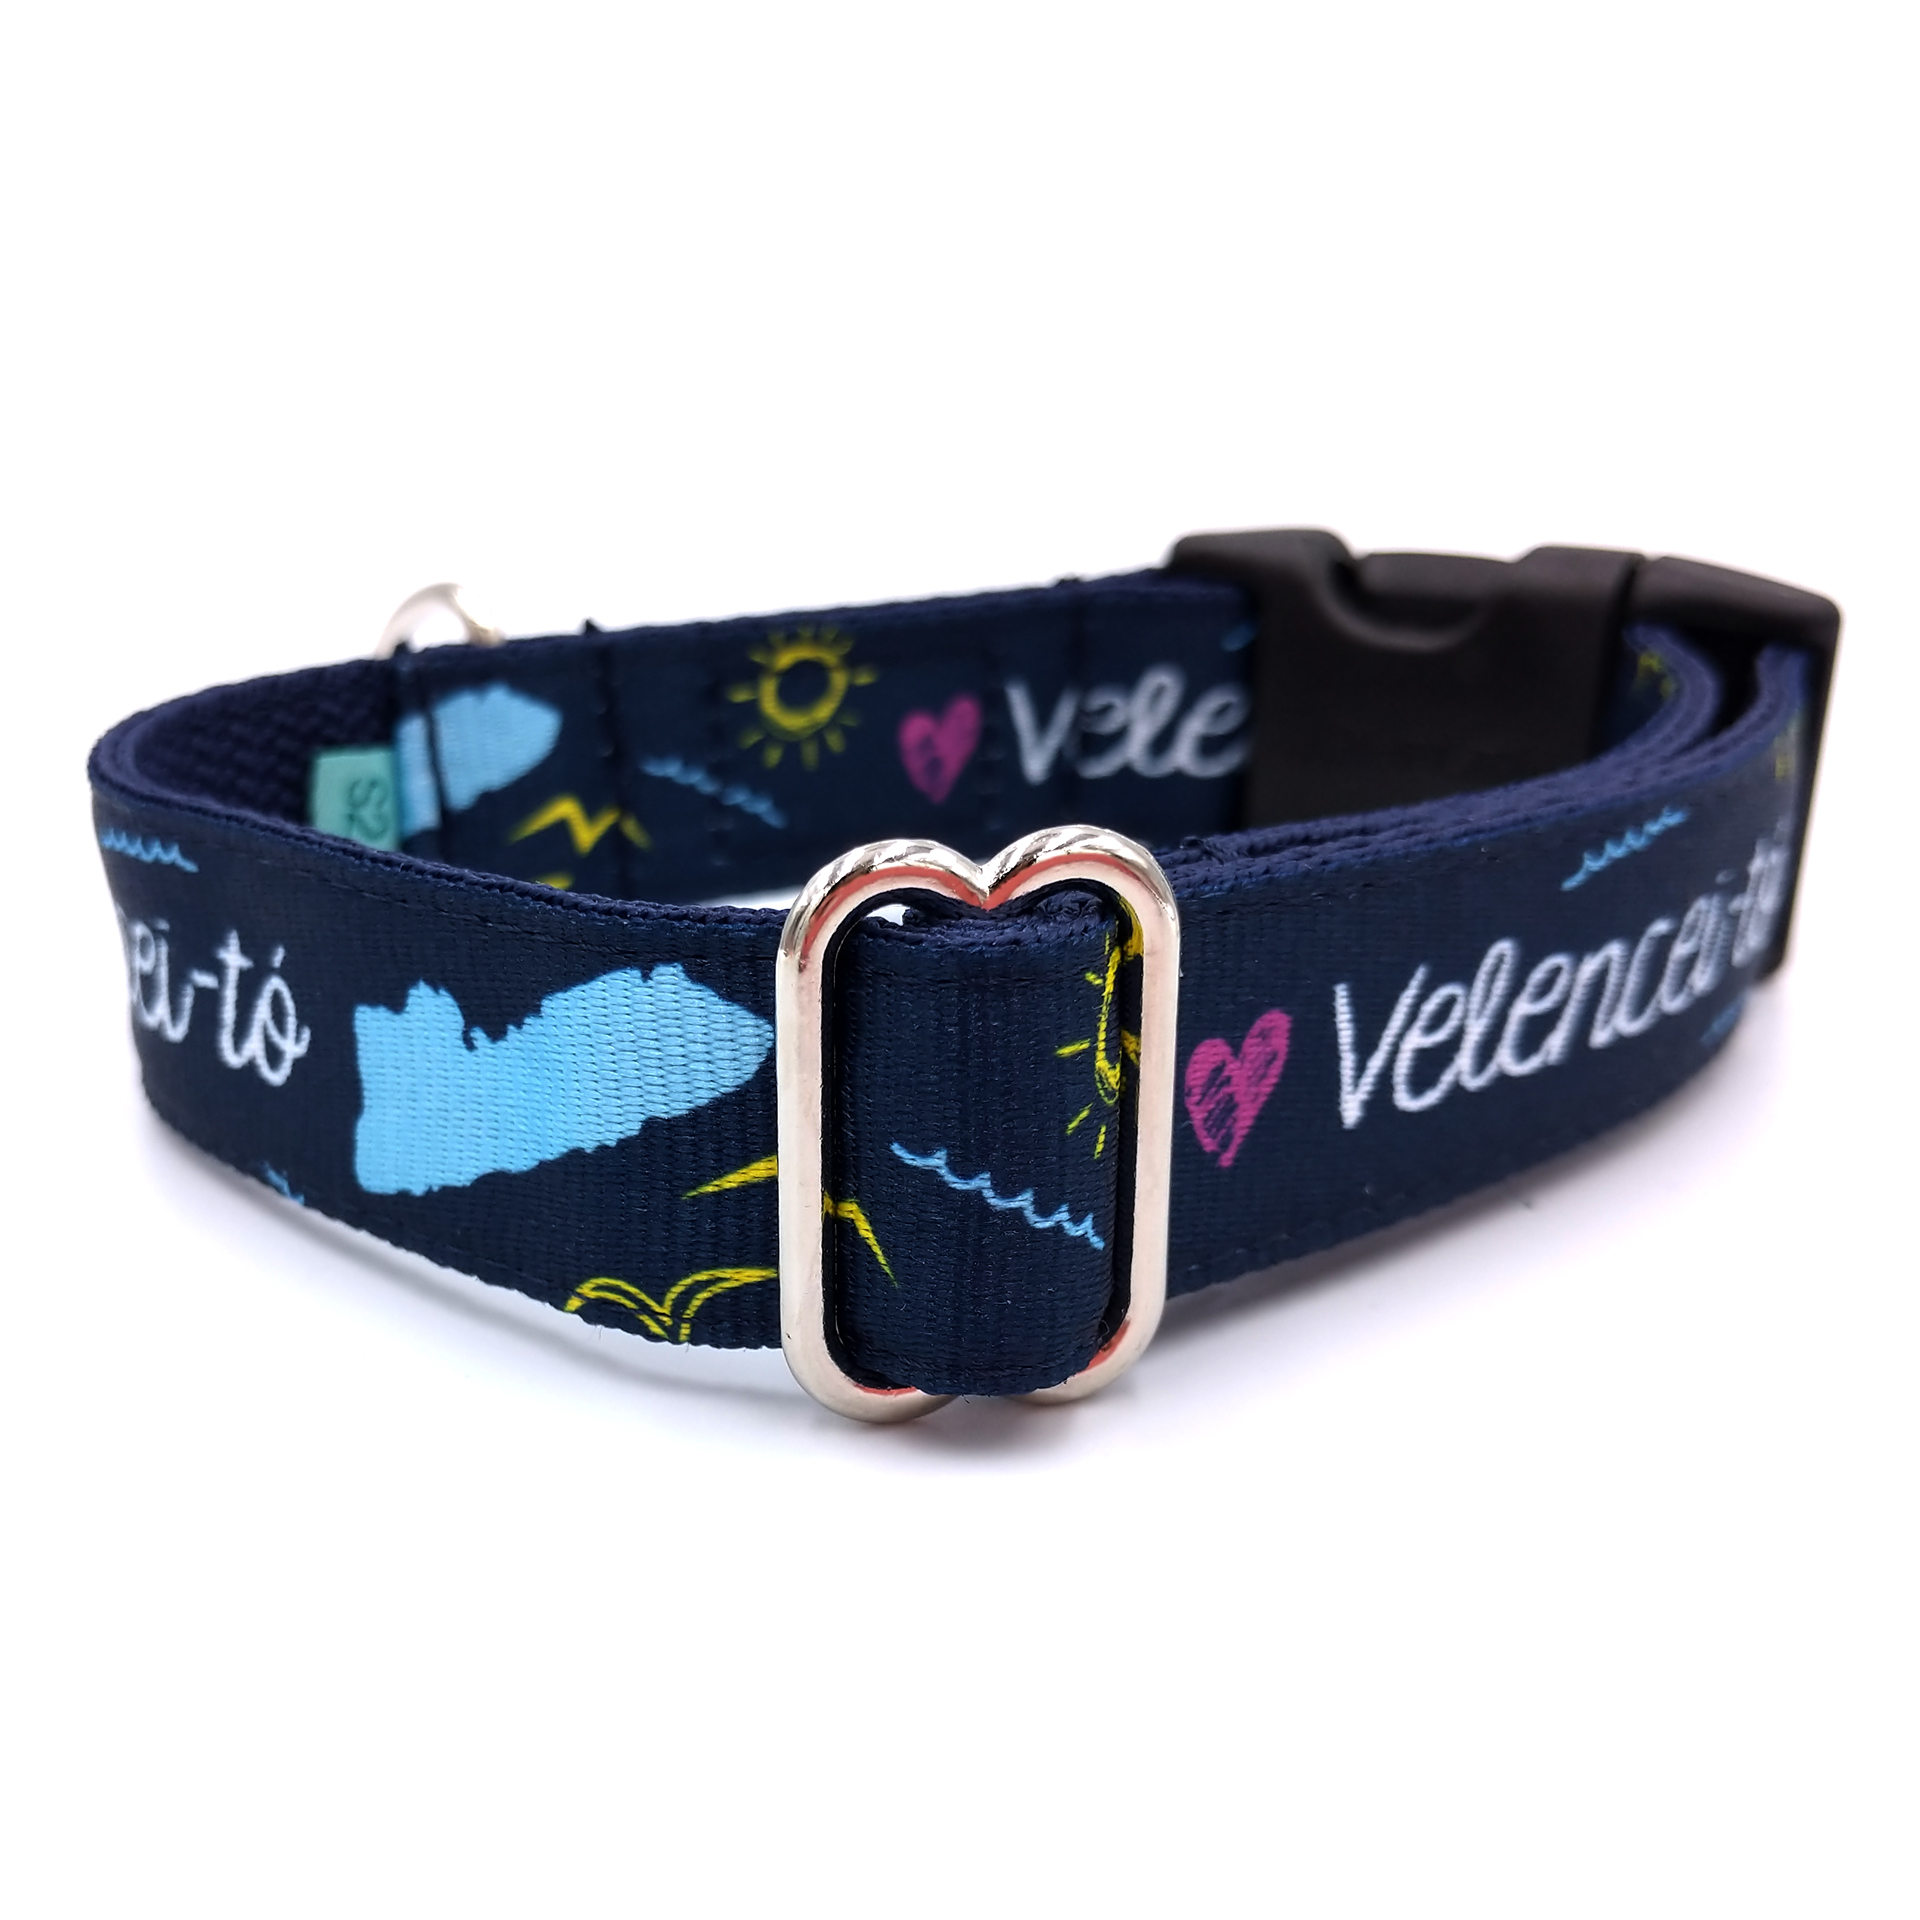 Lake Velence dog collar